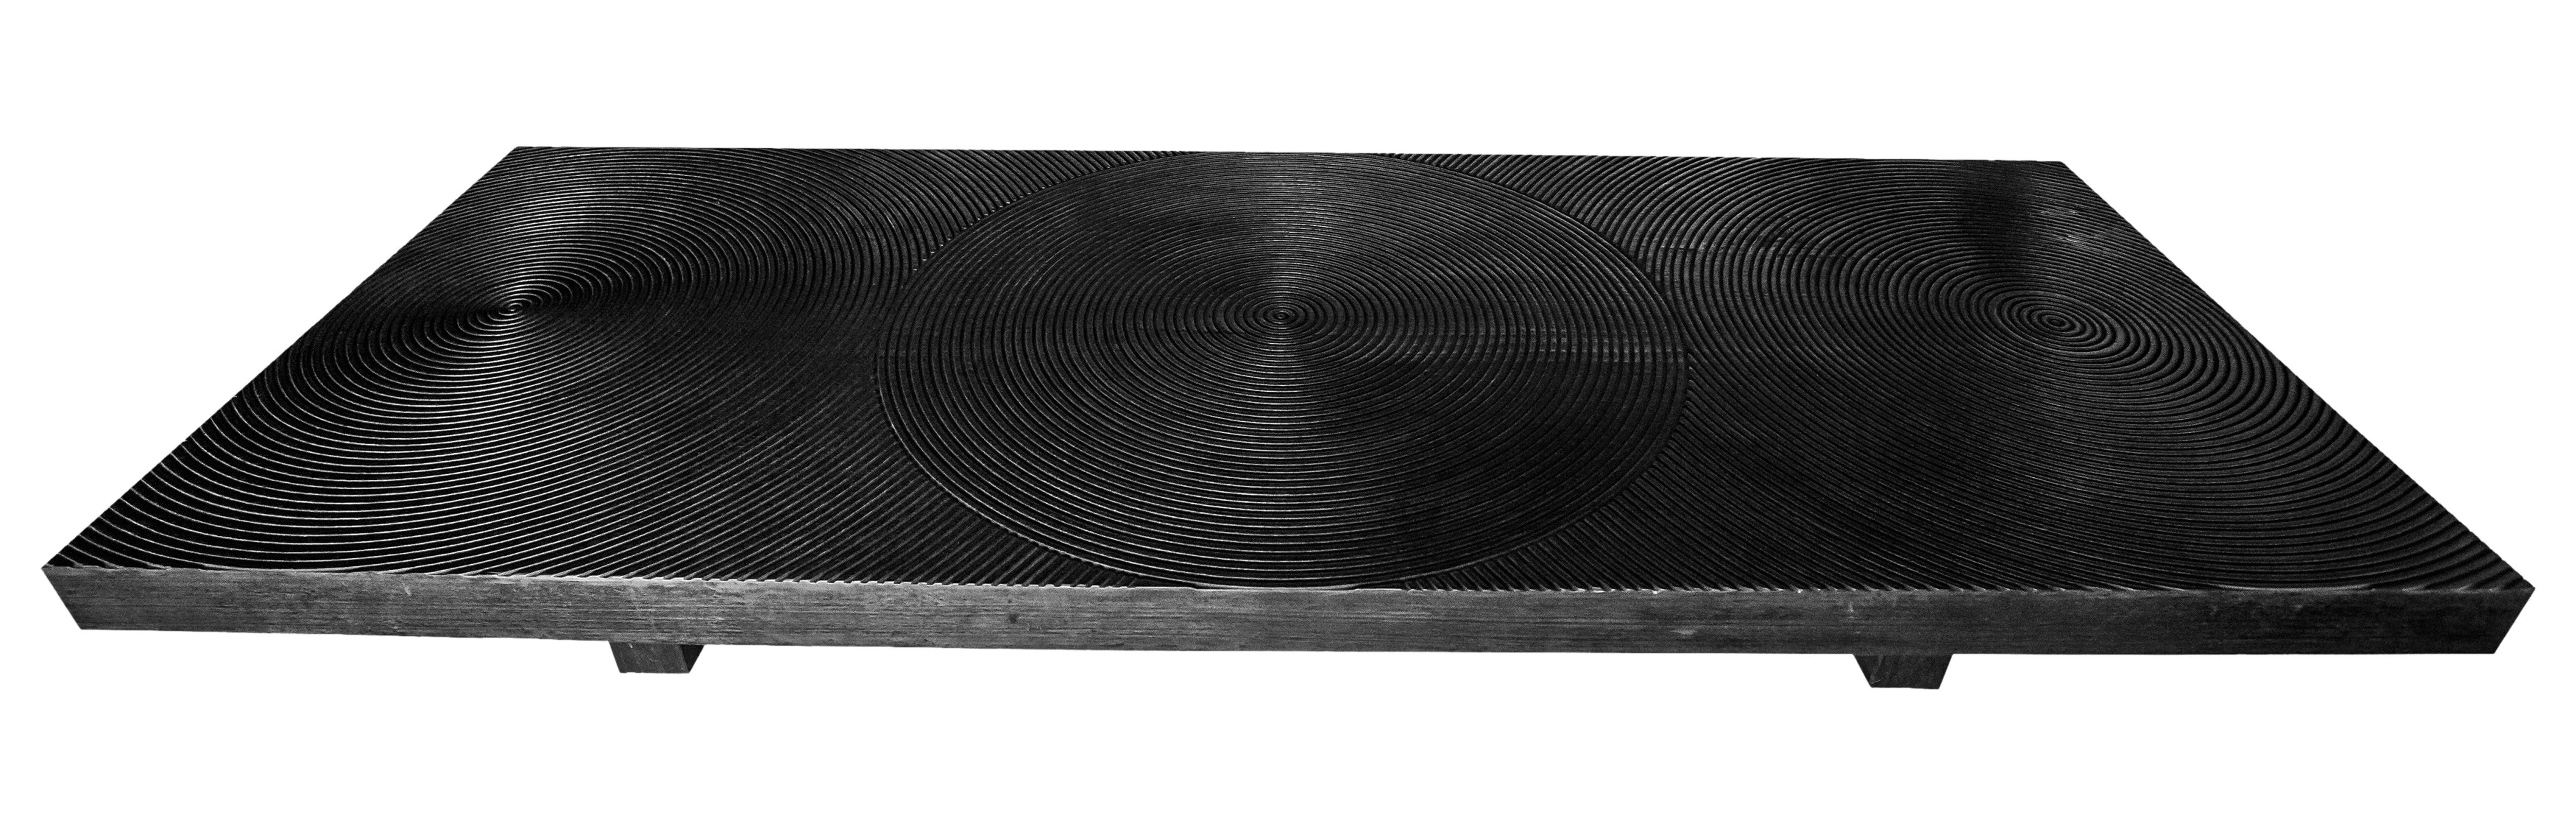 Buy Circles Coffee Table by AZEN Quick Ship designer Furniture